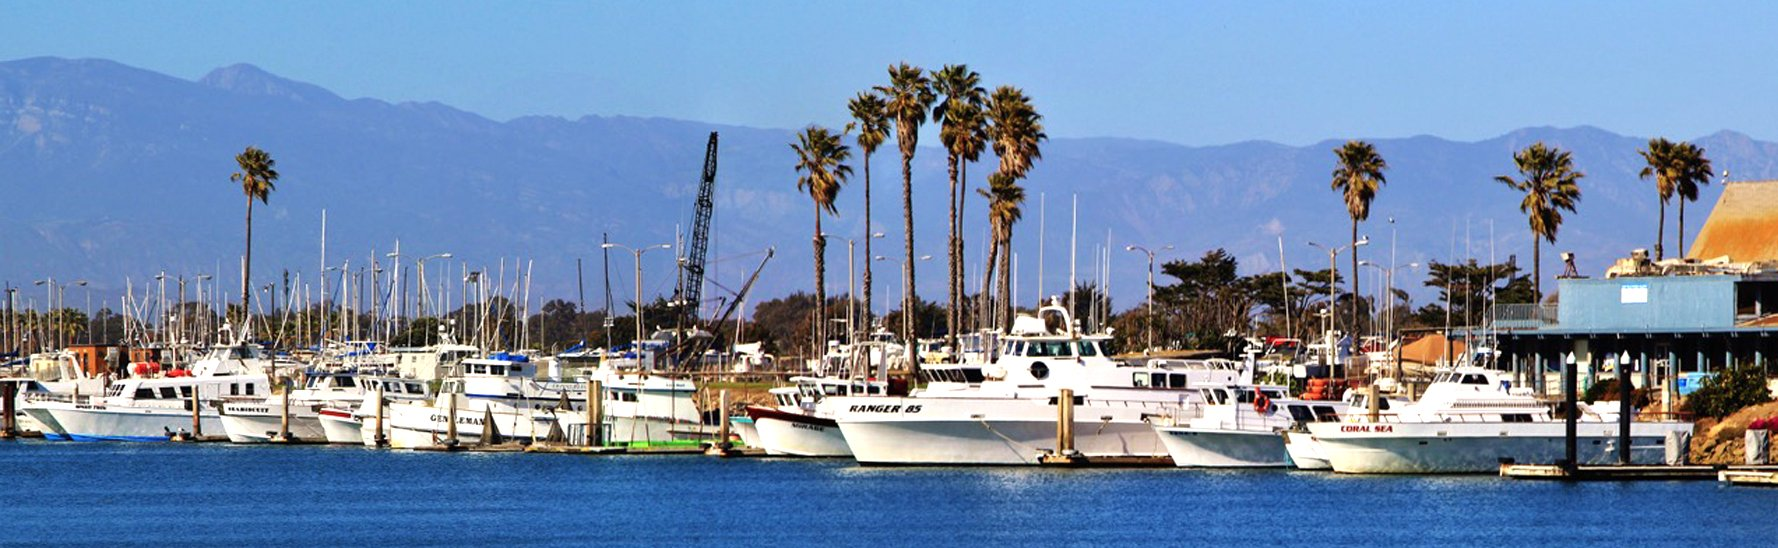 Channel Islands Sportfishing - CISCOS - image